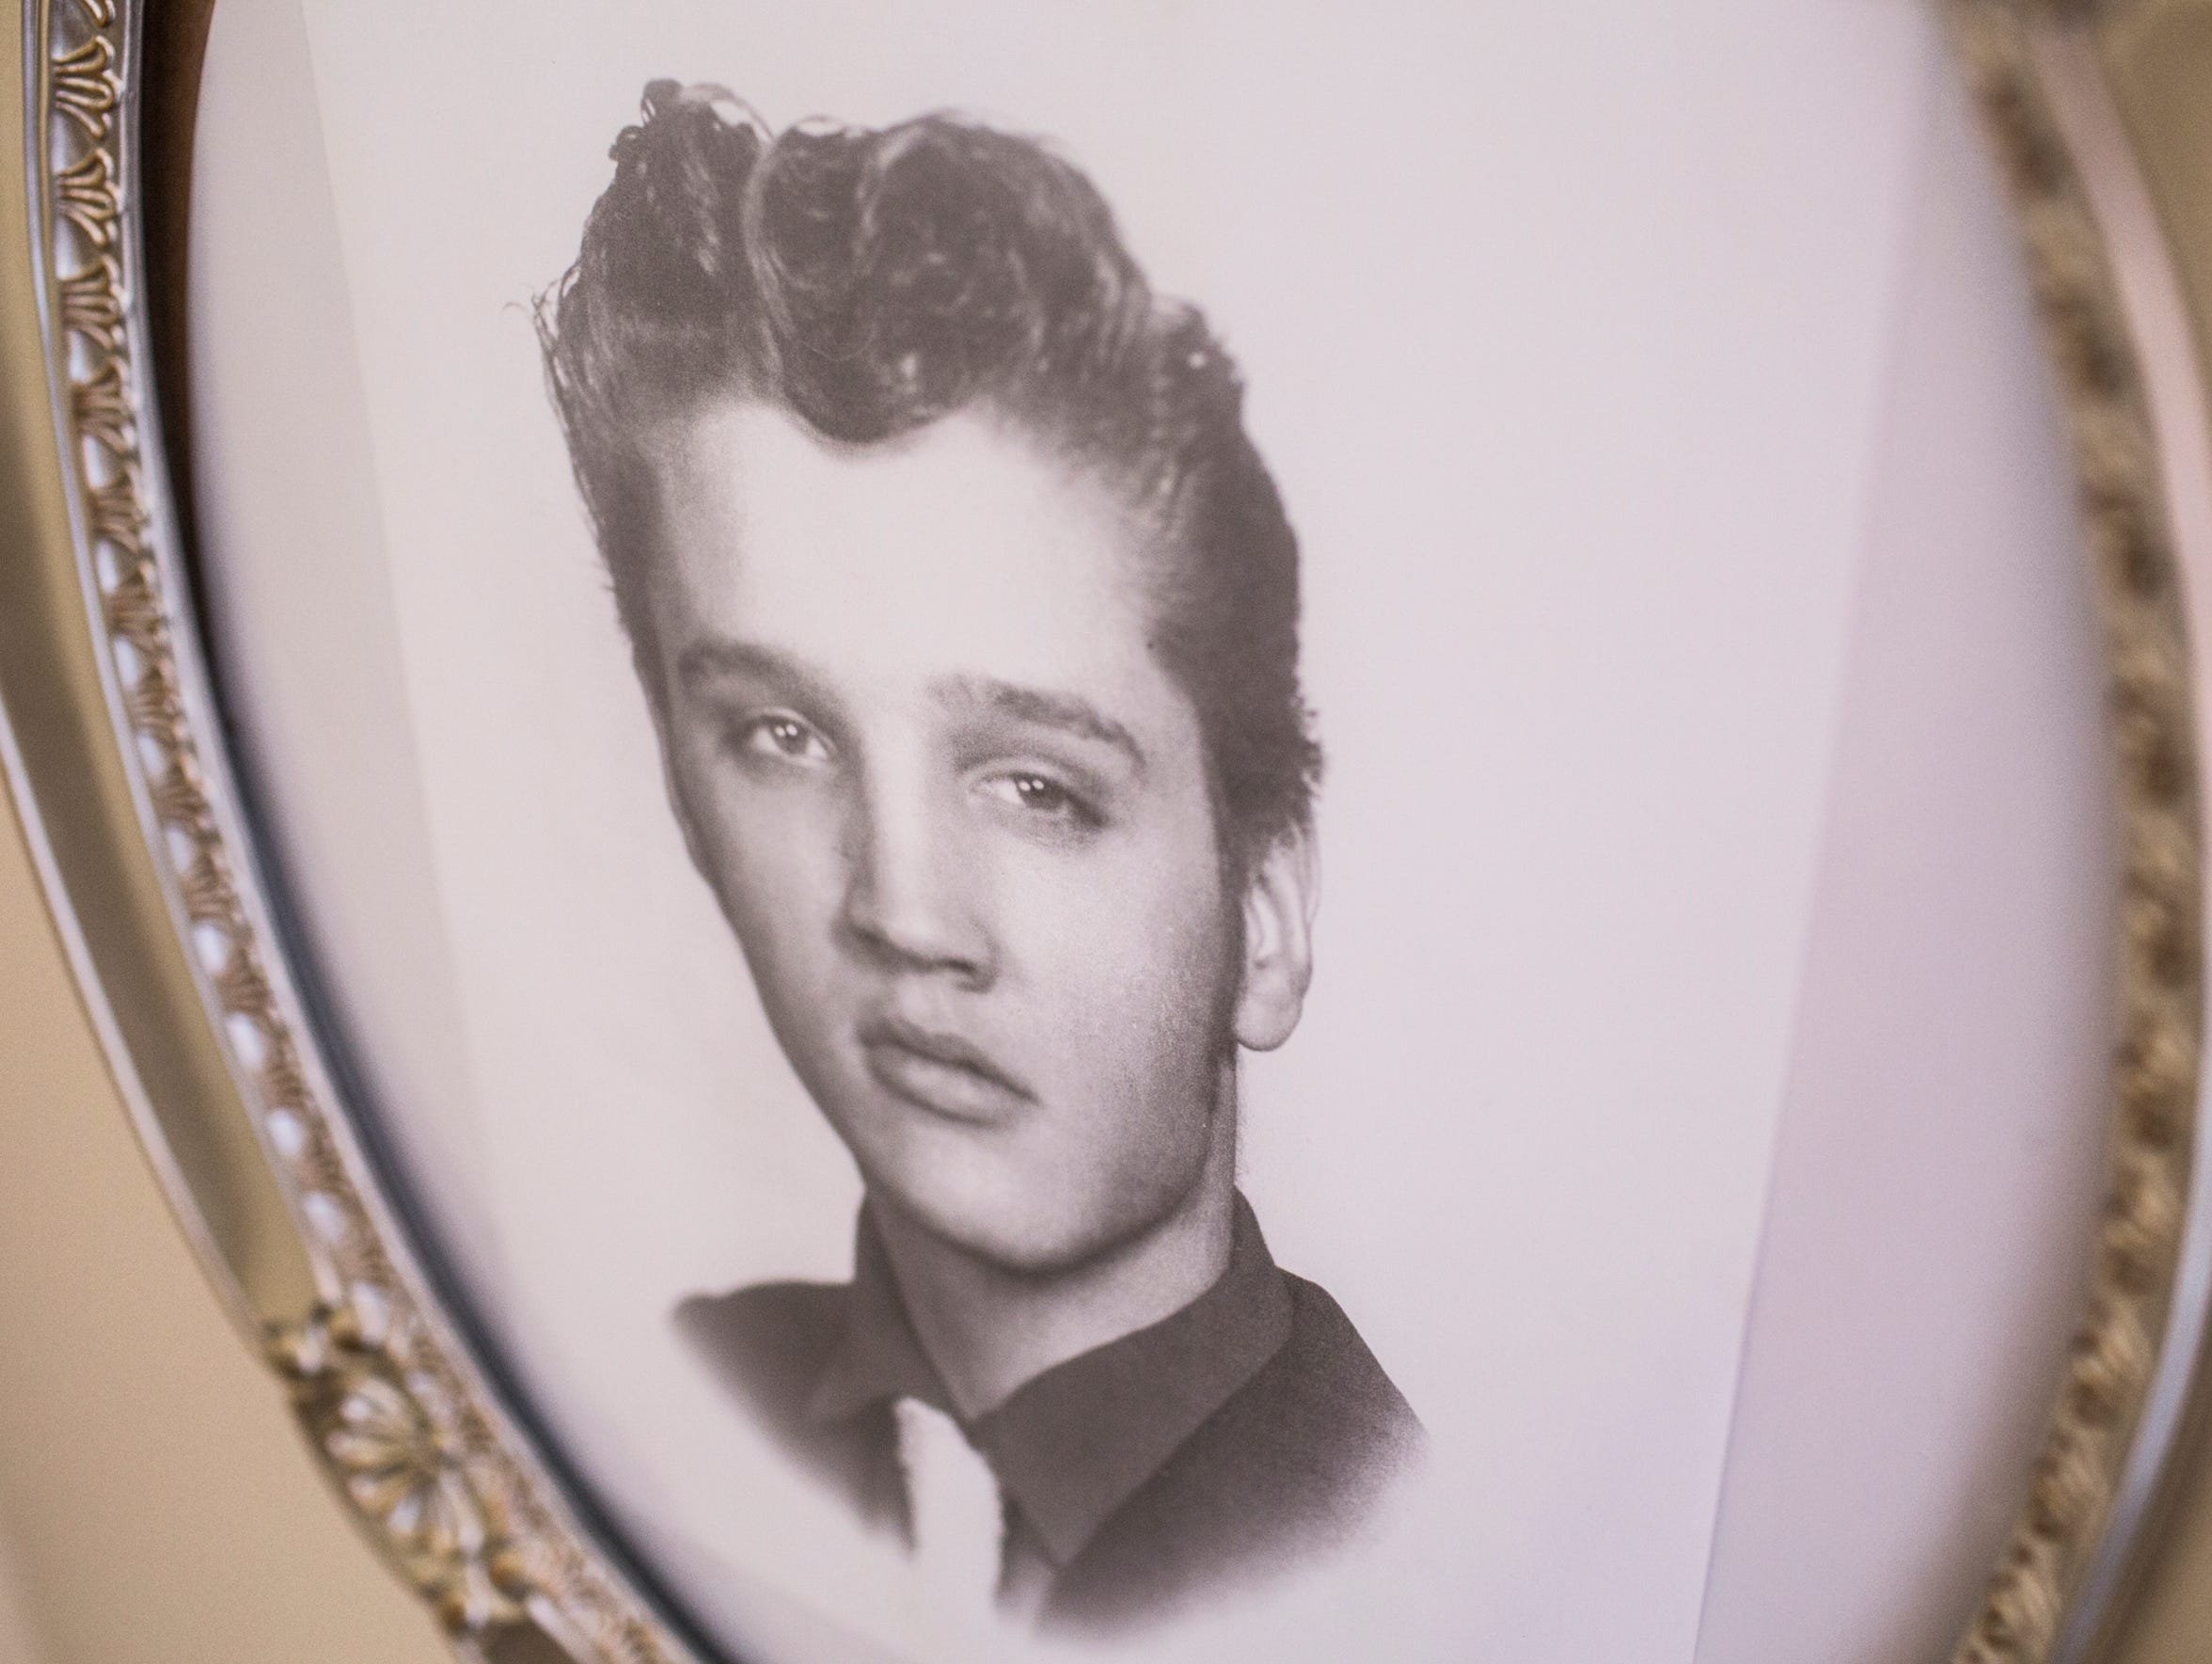 A framed picture of Elvis Presley is seen within the apartment he called home for 4 years in the Lauderdale Courts apartment complex. Elvis, Gladys and Vernon Presley lived in the apartment from September 1949 to January 1953.